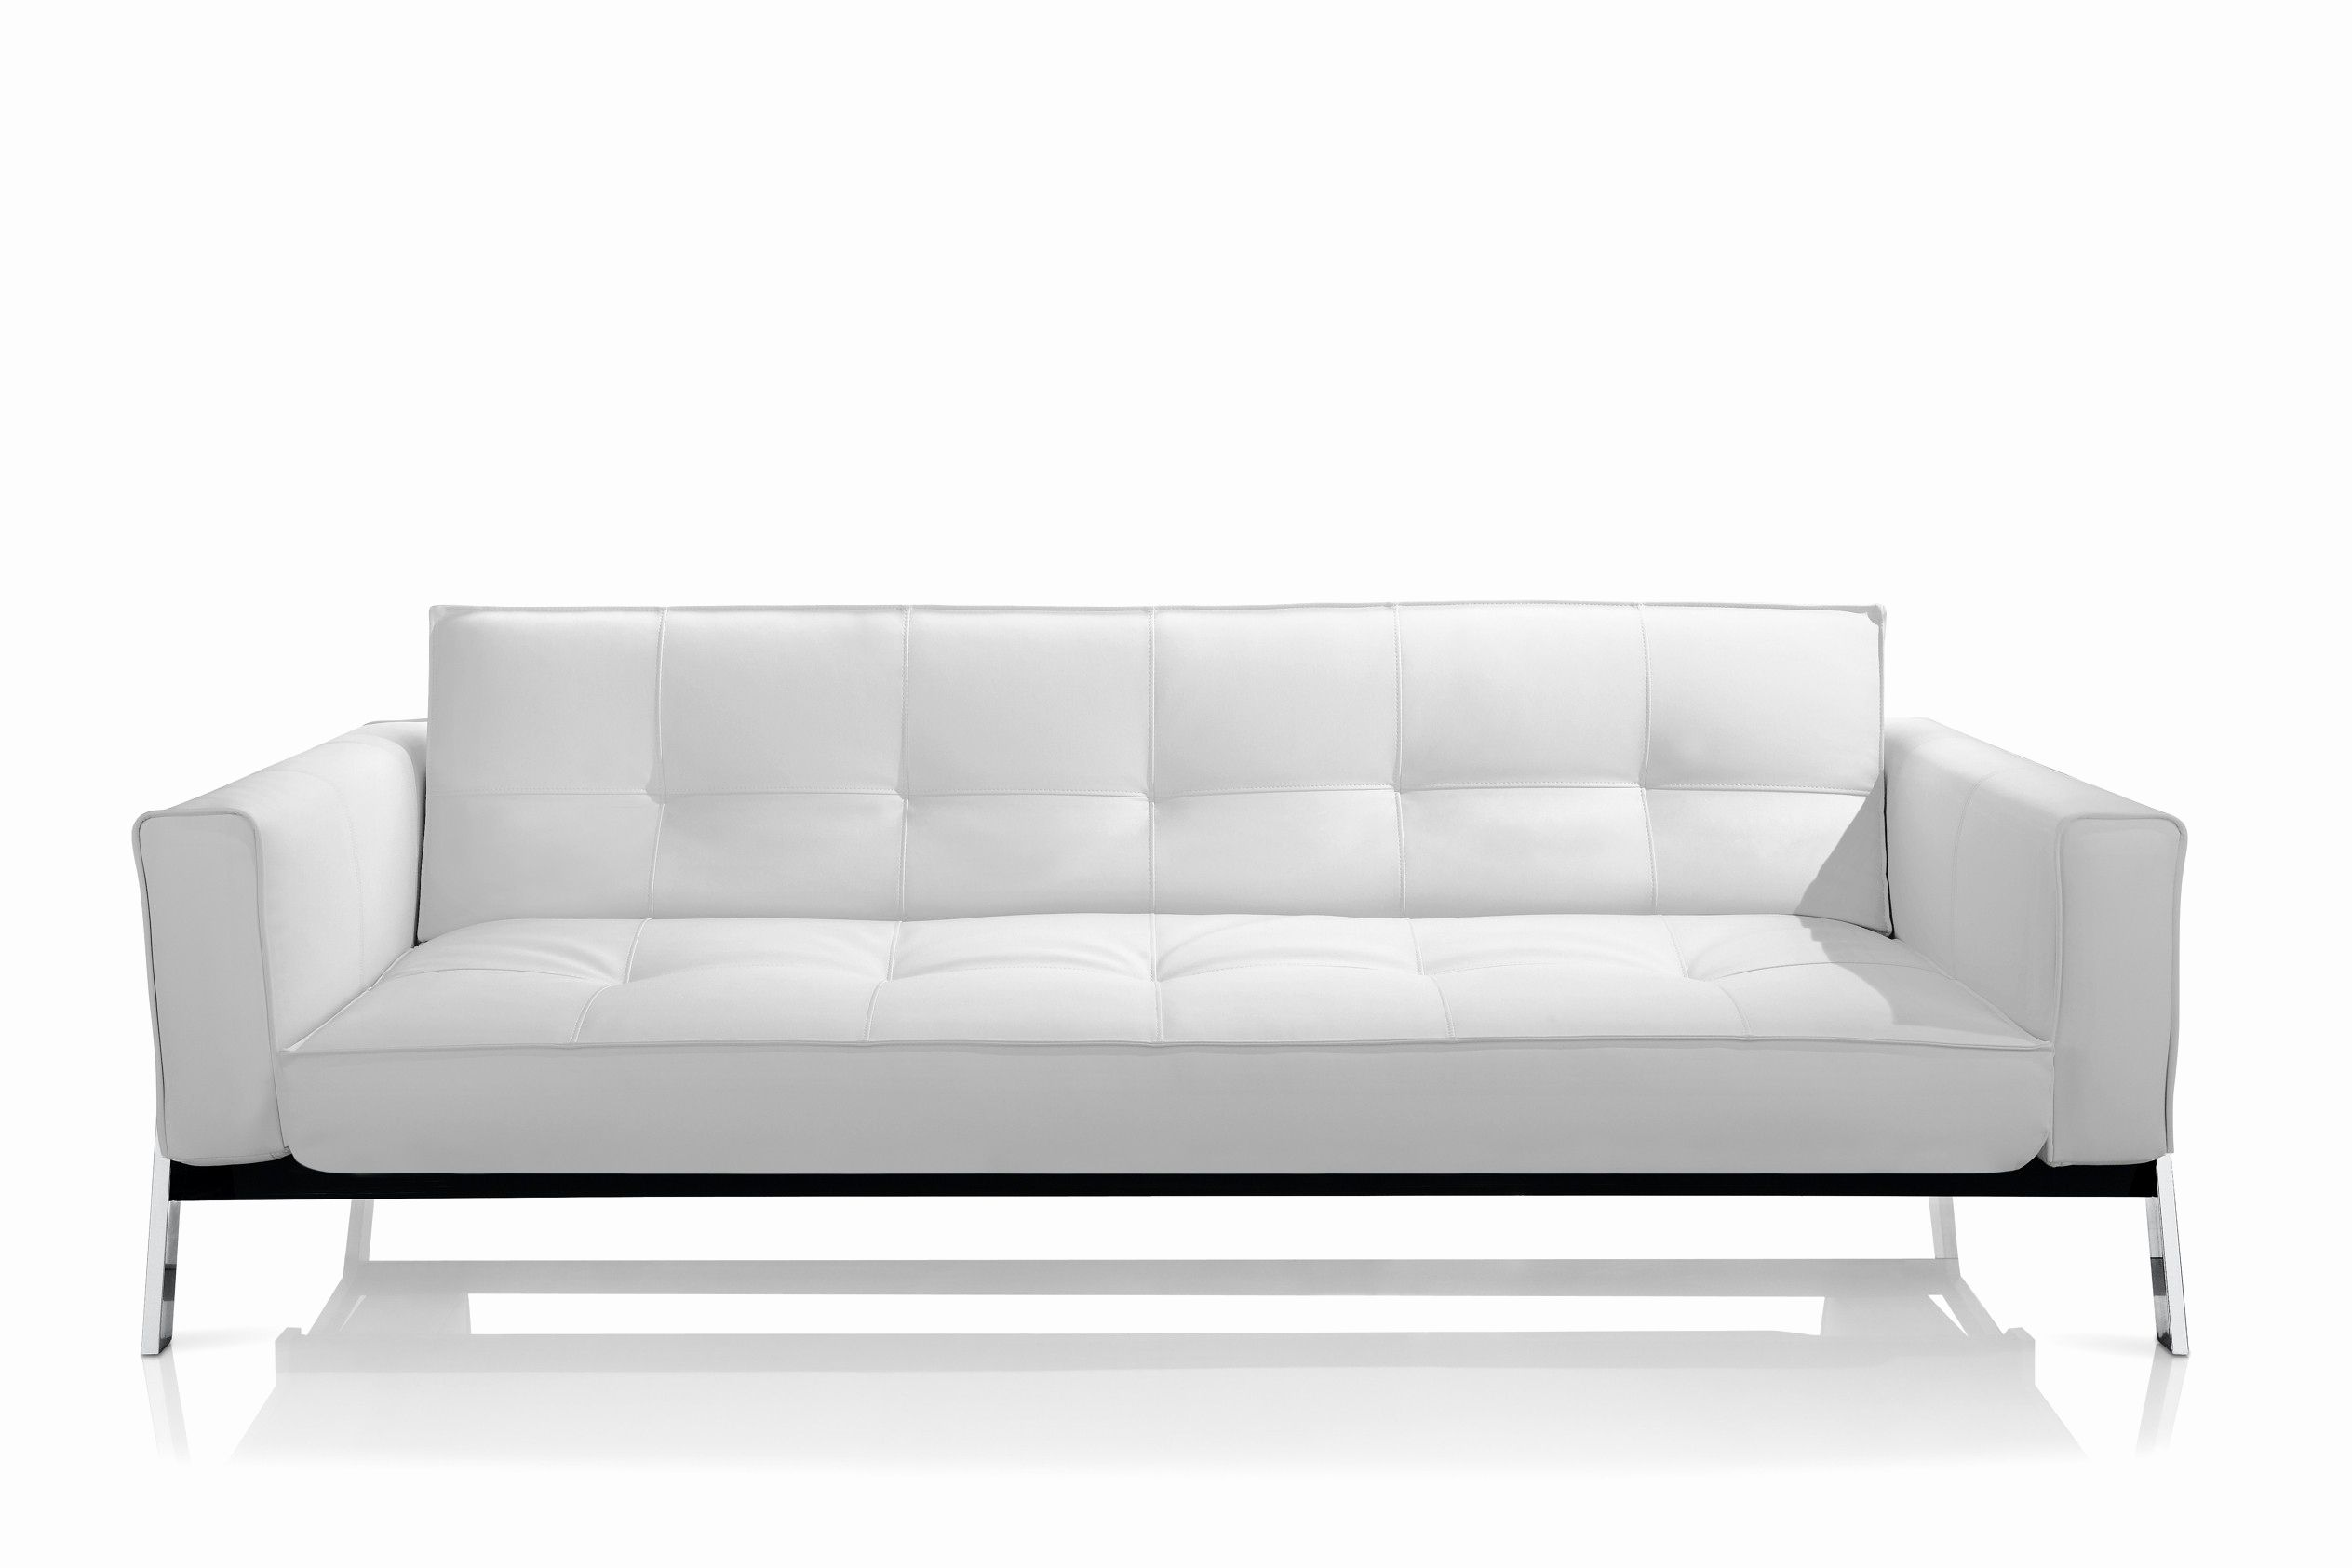 Awesome Contemporary Leather Sleeper Sofa Shot Contemporary